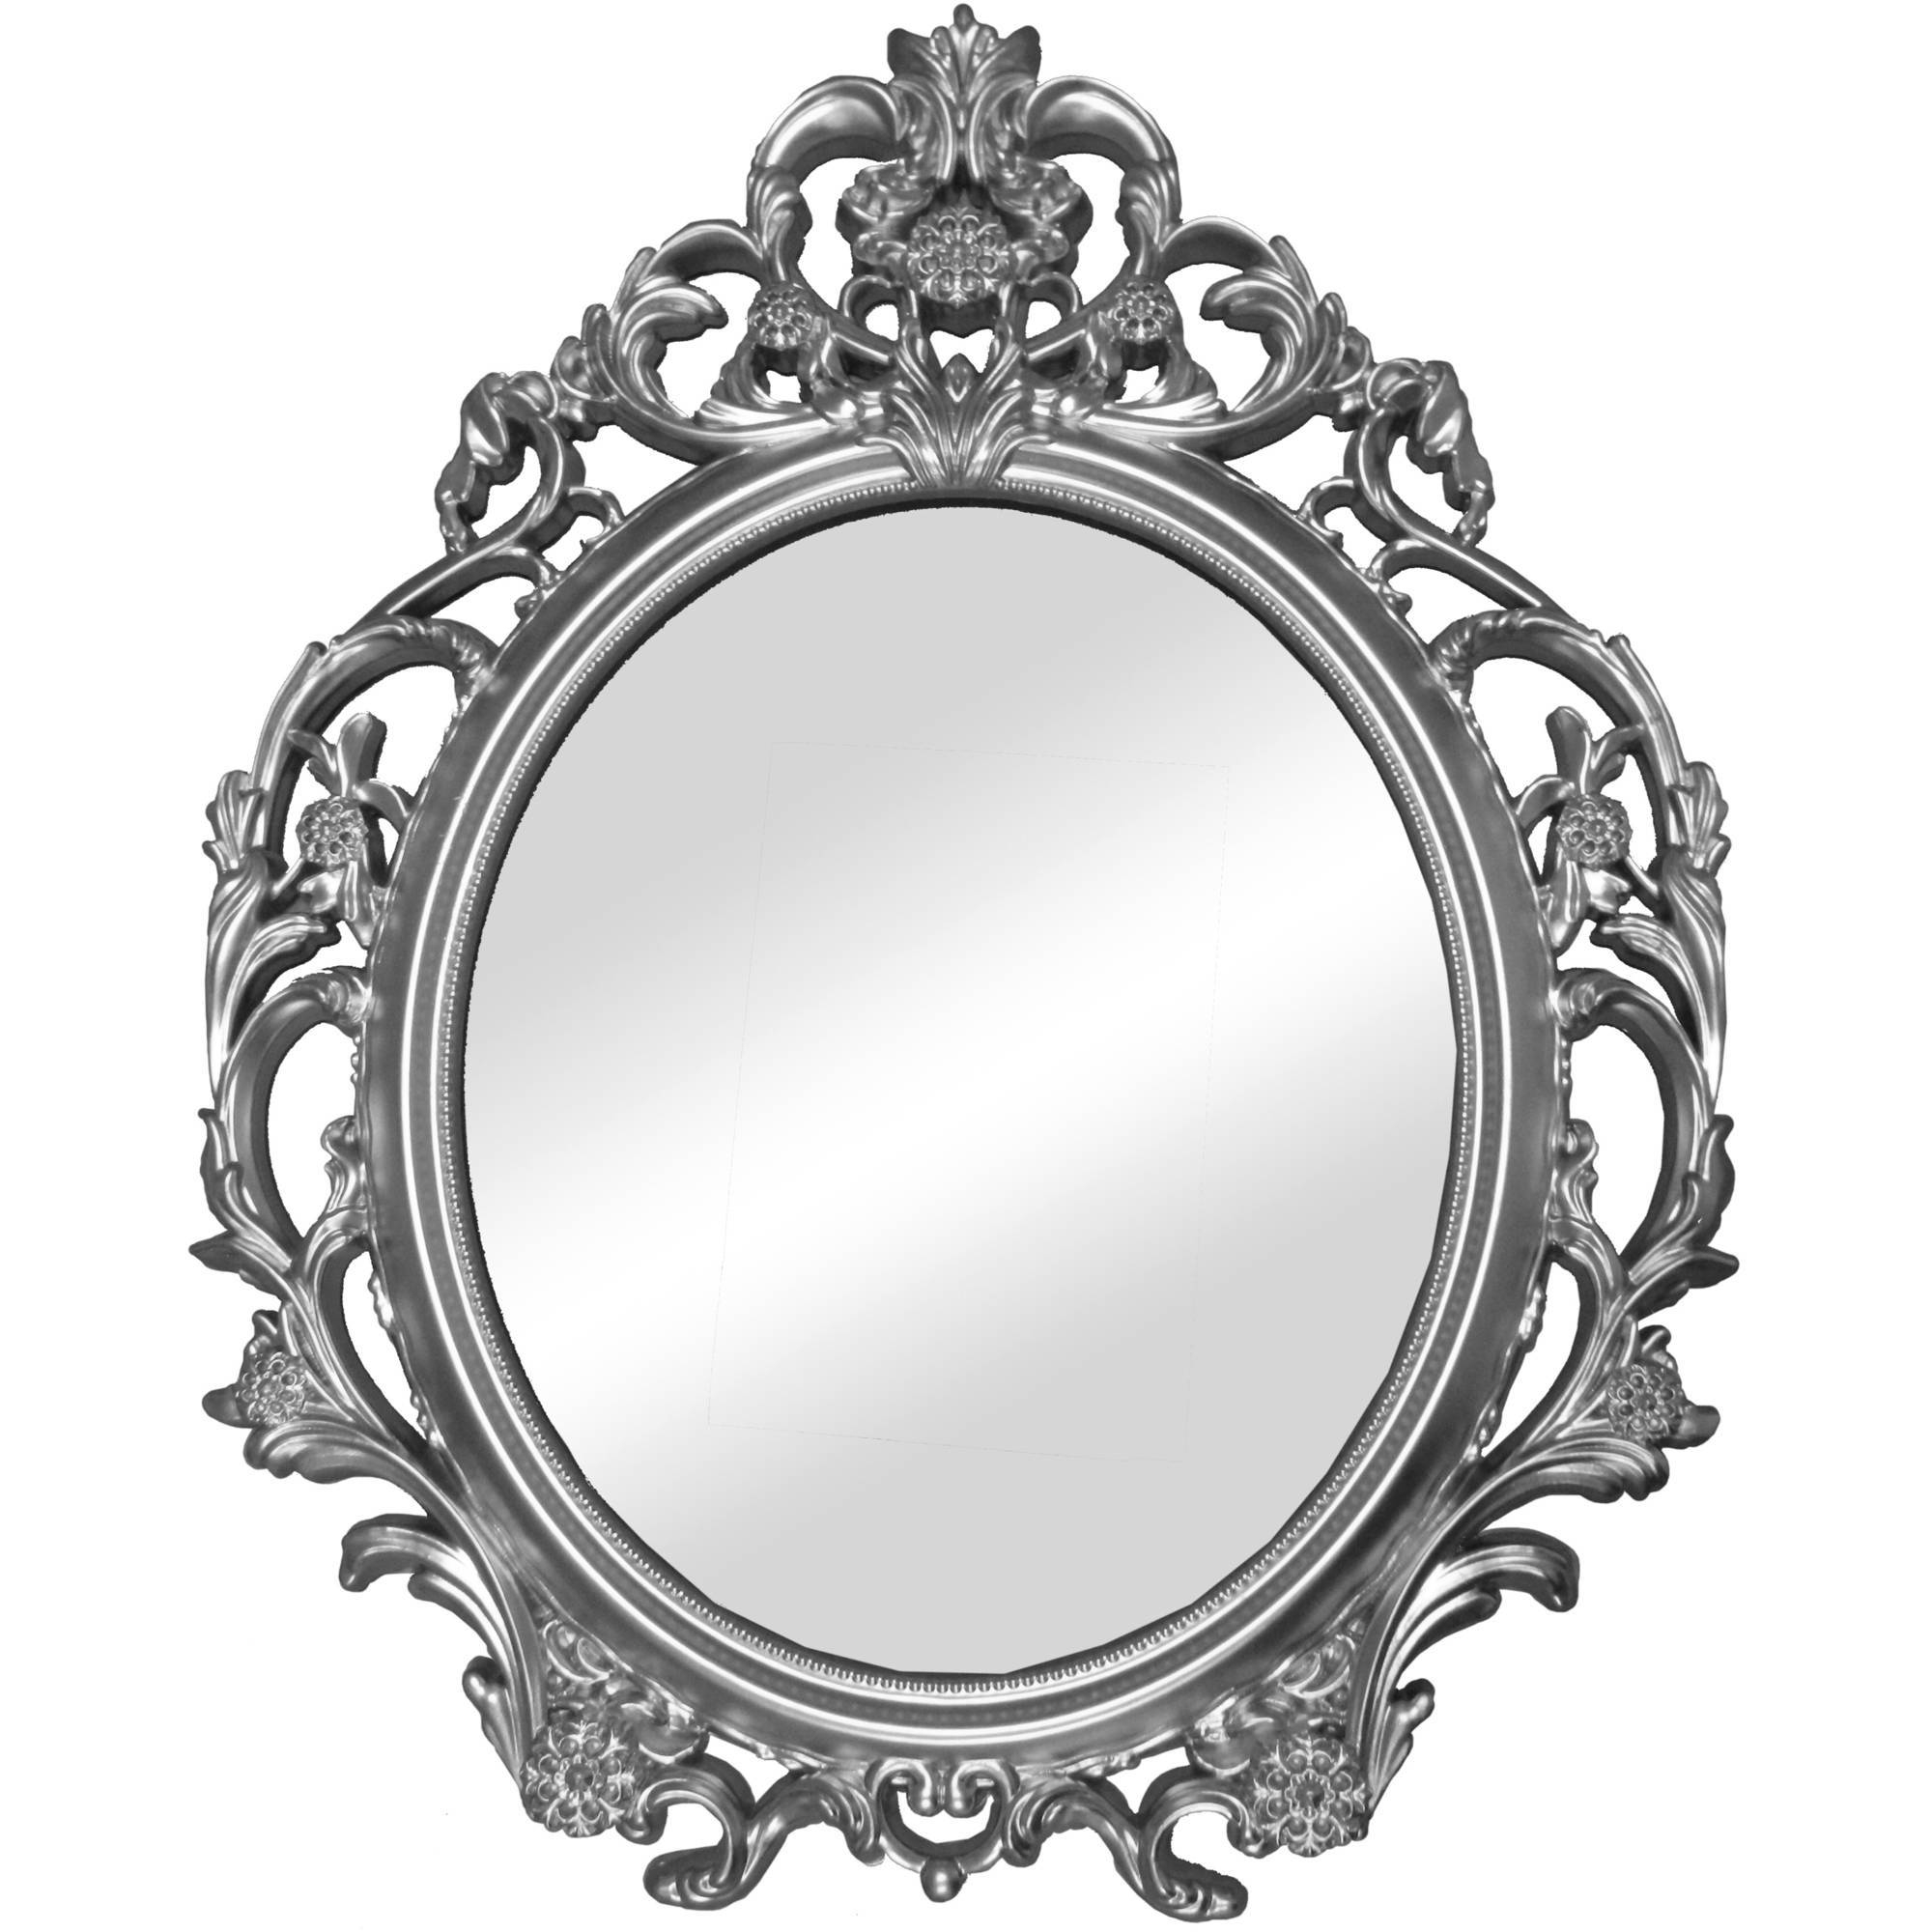 Better Homes And Gardens Baroque Wall Mirror – Walmart Within Baroque Wall Mirrors (View 6 of 15)